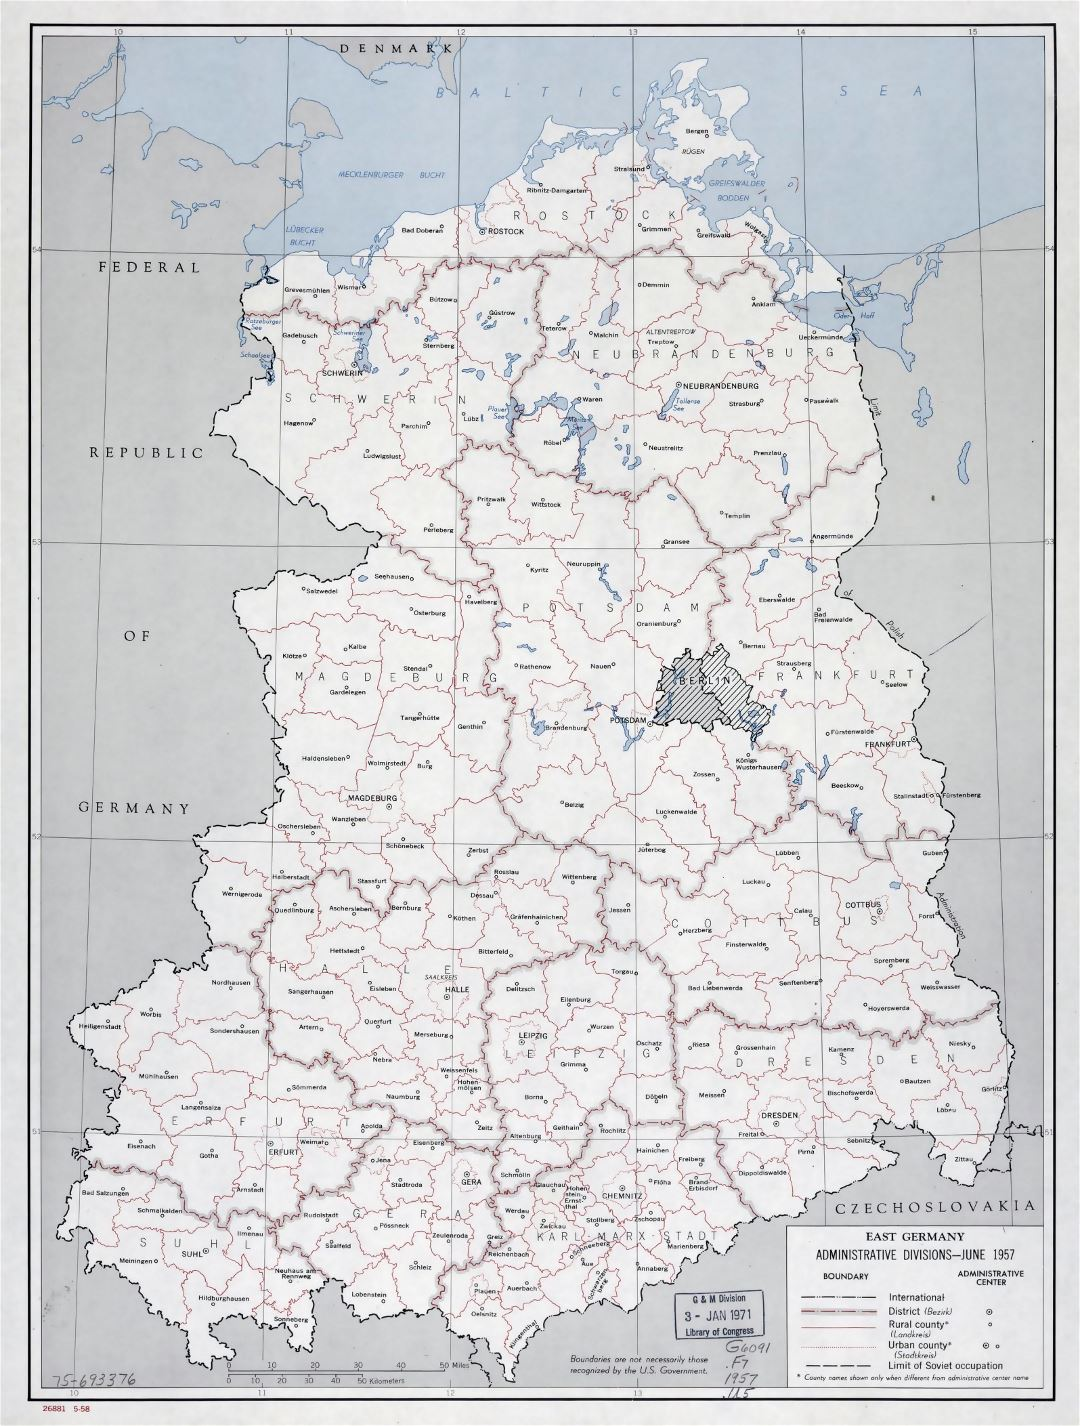 Large administrative divisions map of East Germany - 1958